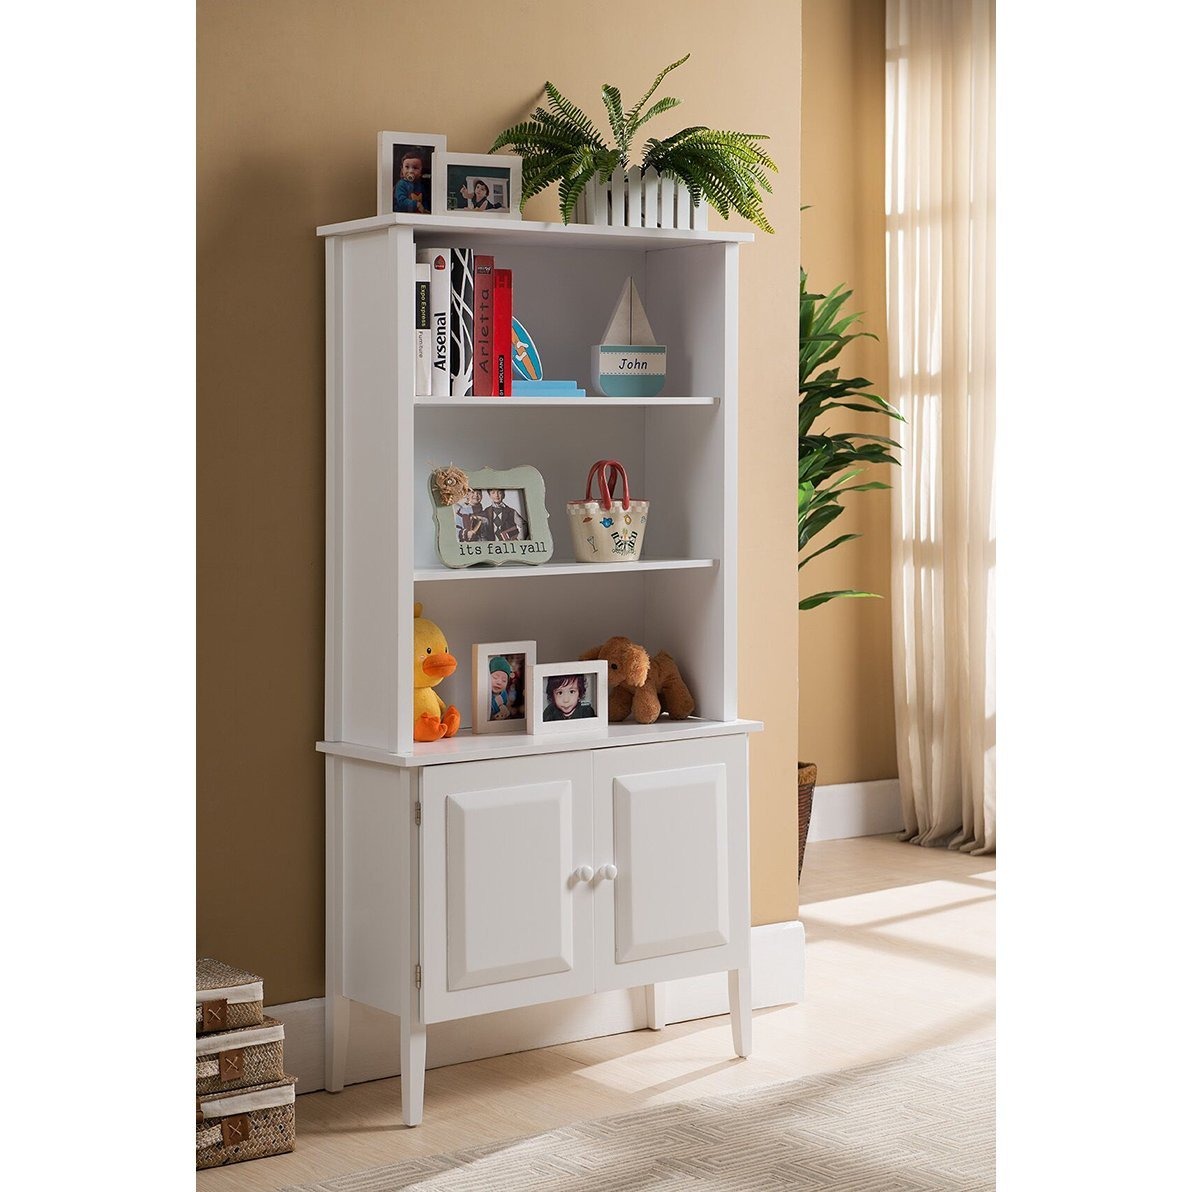 Cabinet Traditional, Transitional Tall White Bookcase (BK120). 29 in Wide x 12 in Long x 58 in High - Assembly Required